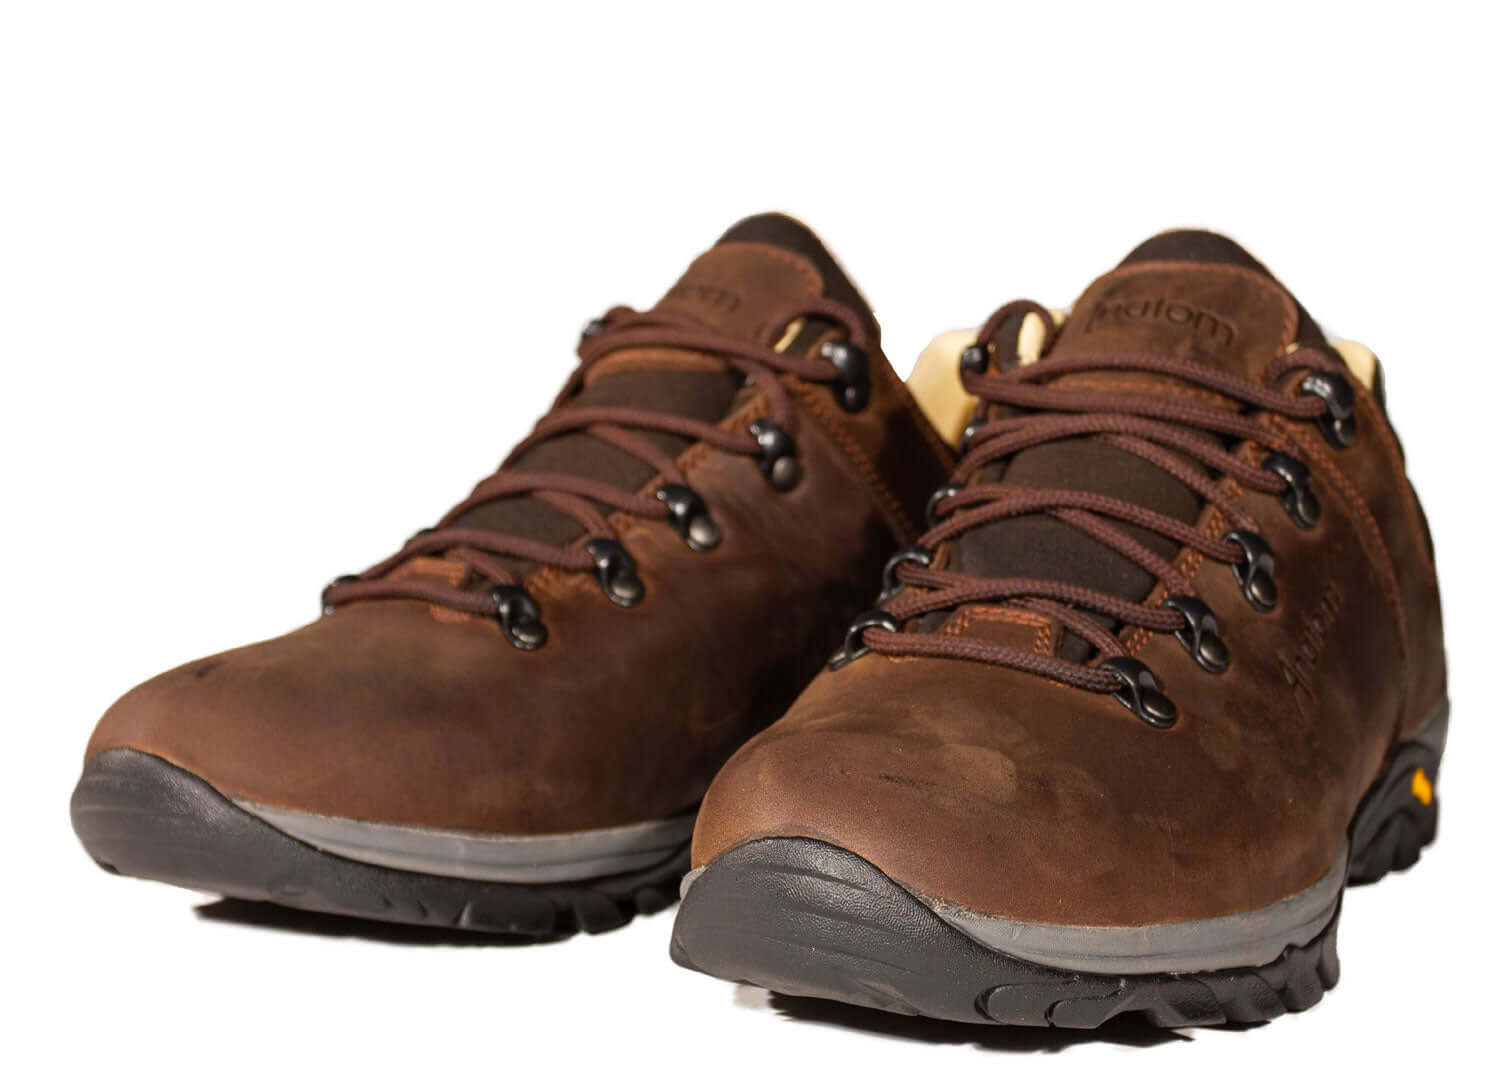 Men's leather hiking shoes in brown